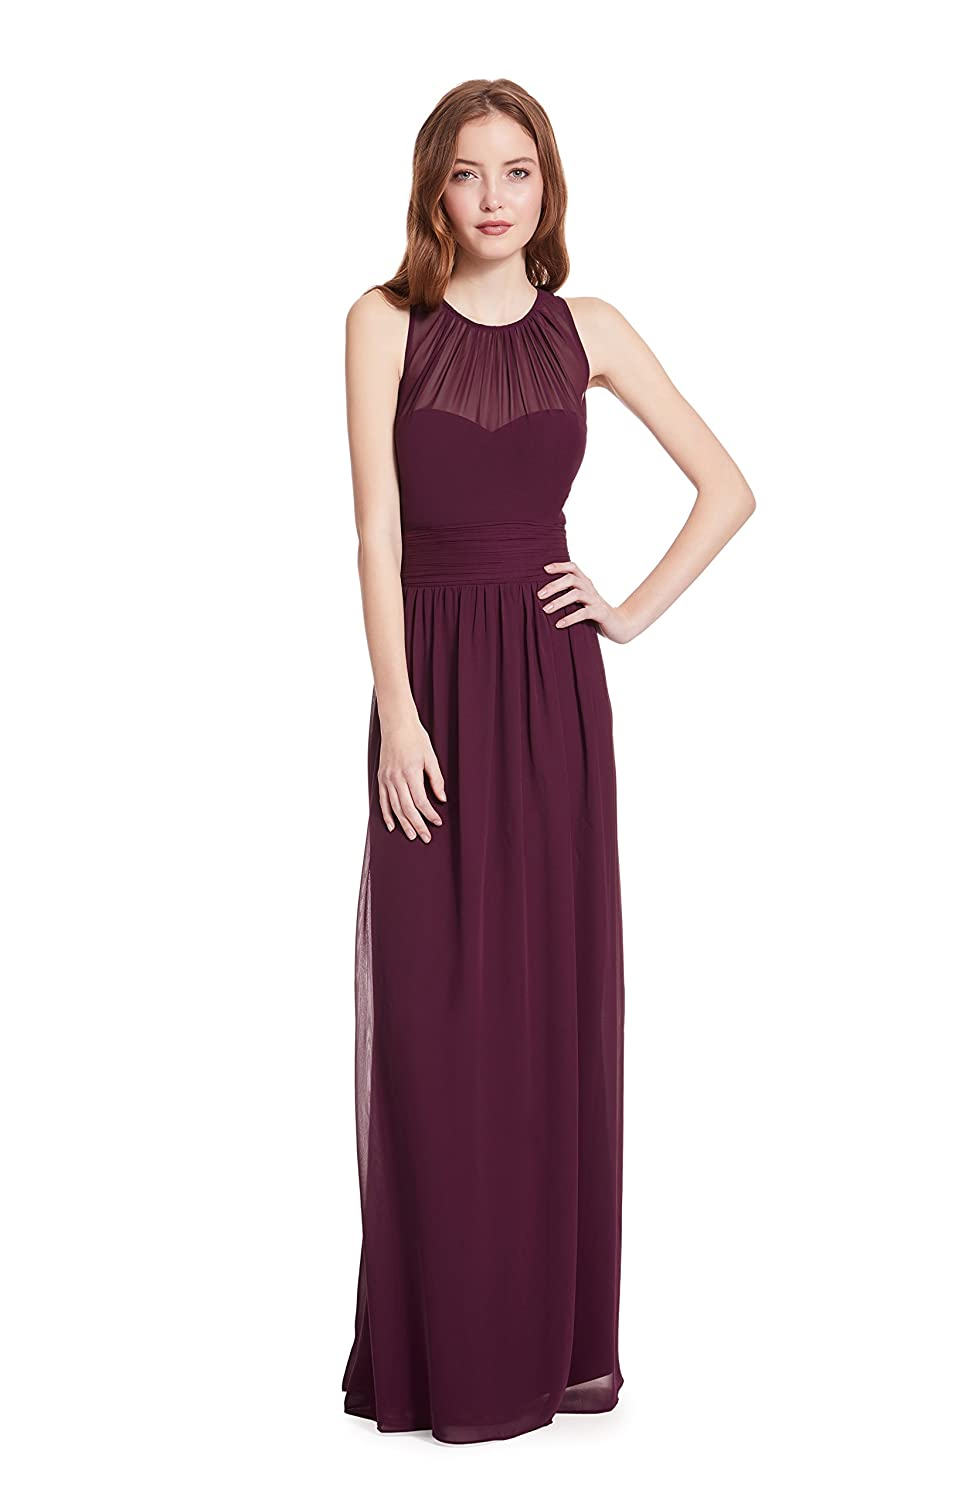 Samantha Paige Bateau Neckline Illusion Detail A-Line Chiffon Formal Dress SP 80235